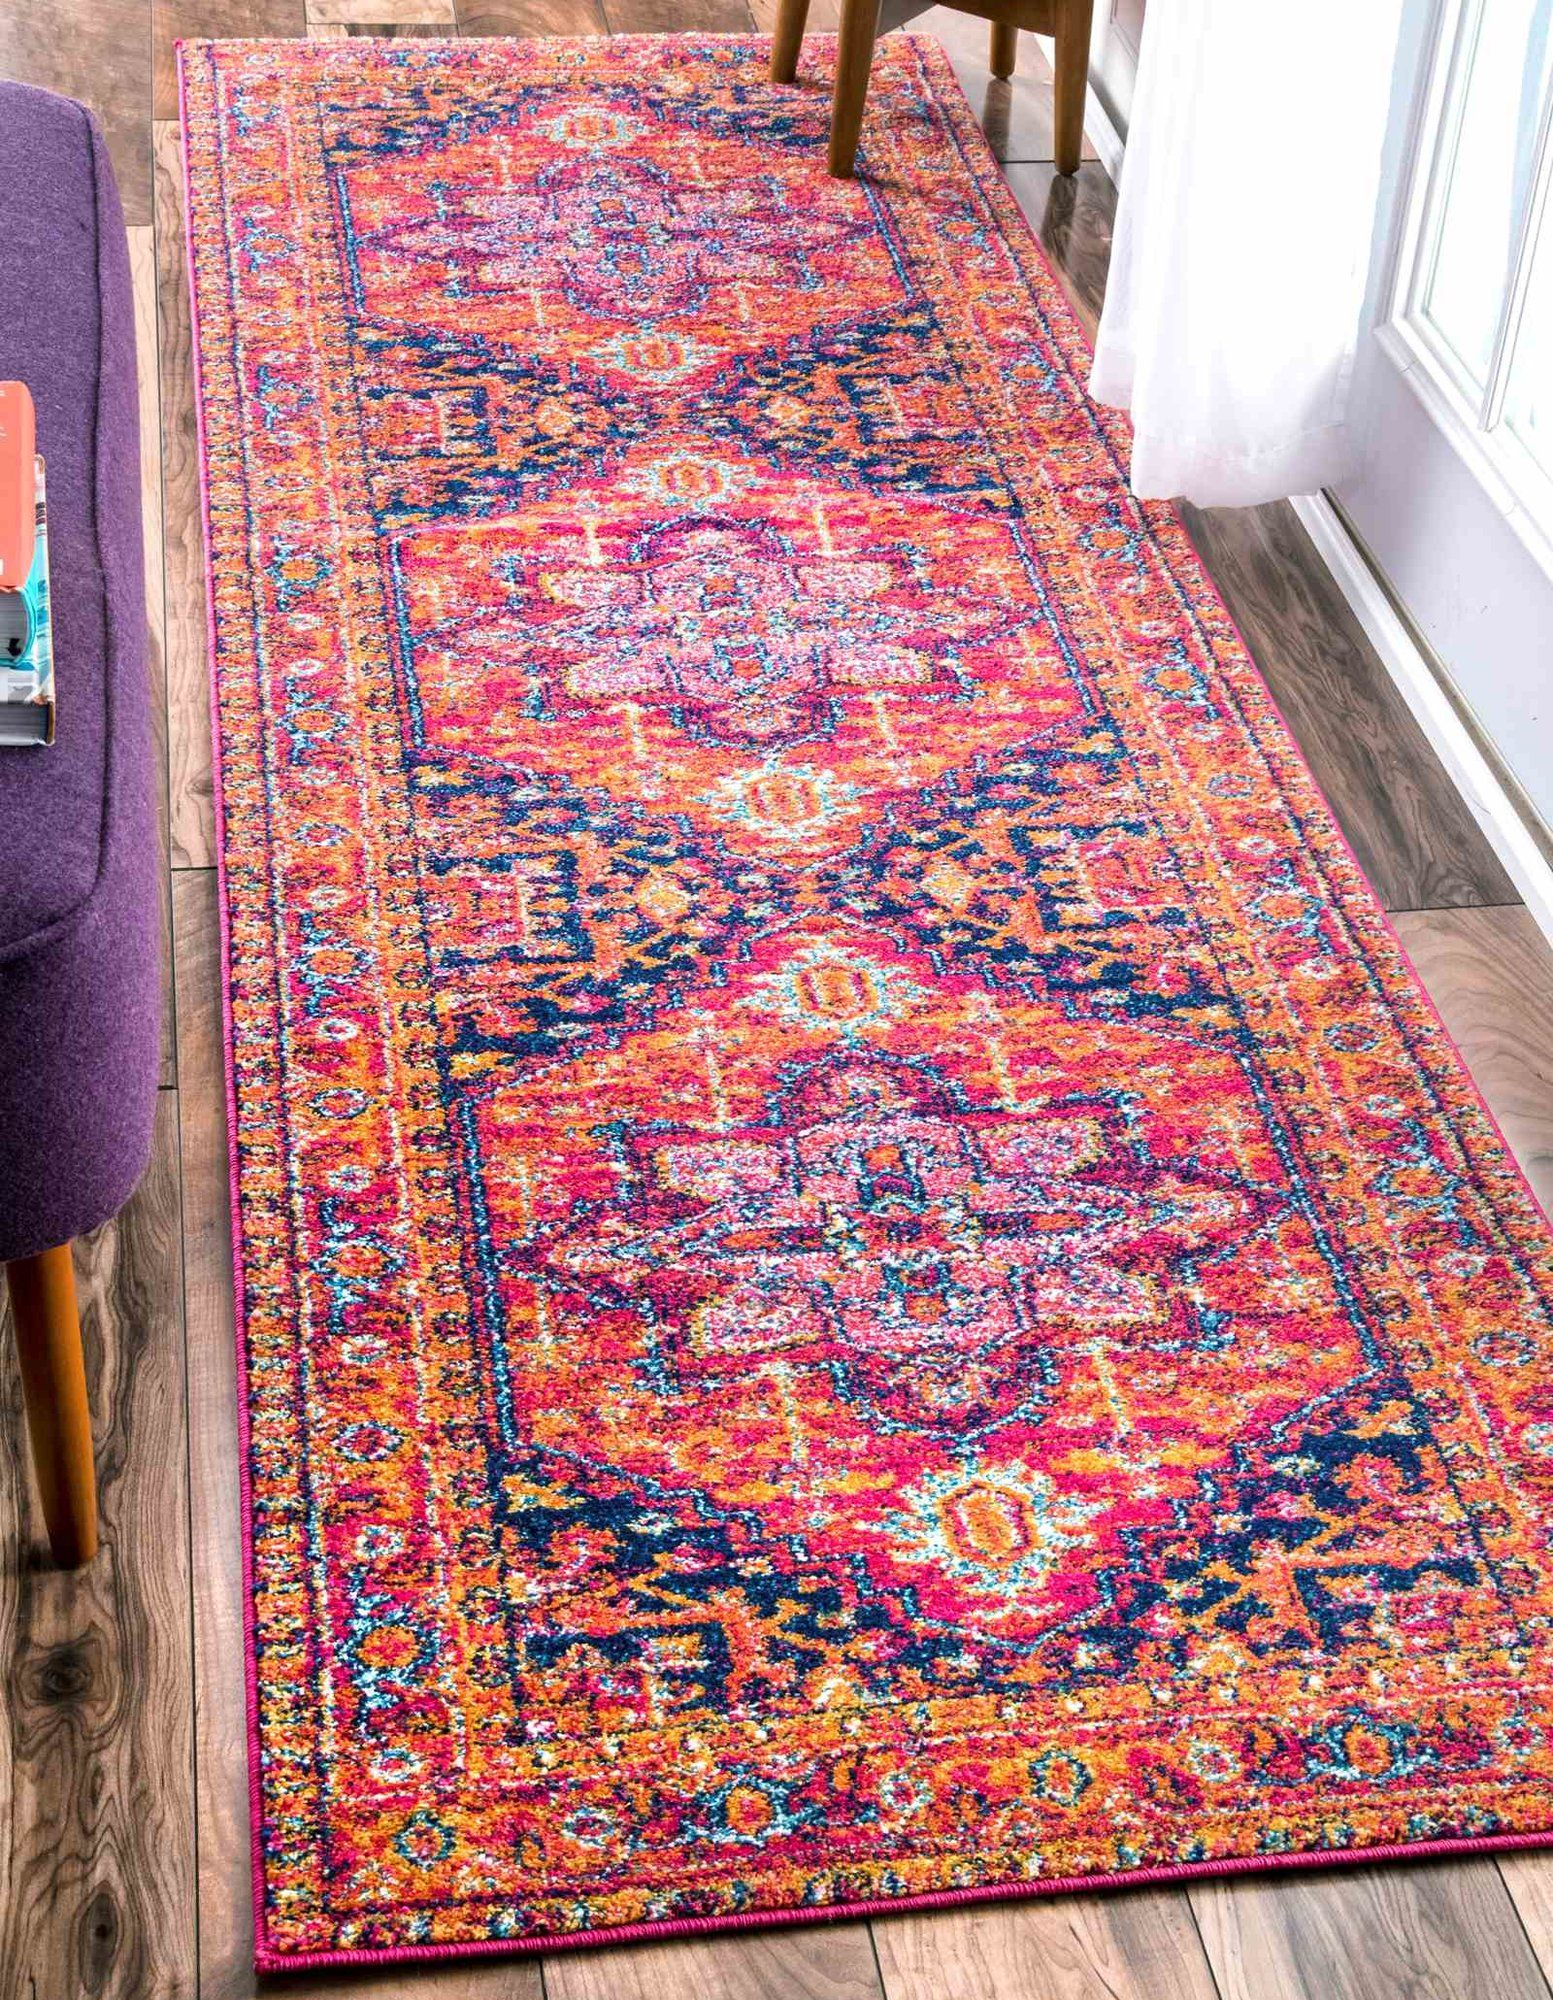 Barksdale Blooming Multi Colored Area Rug